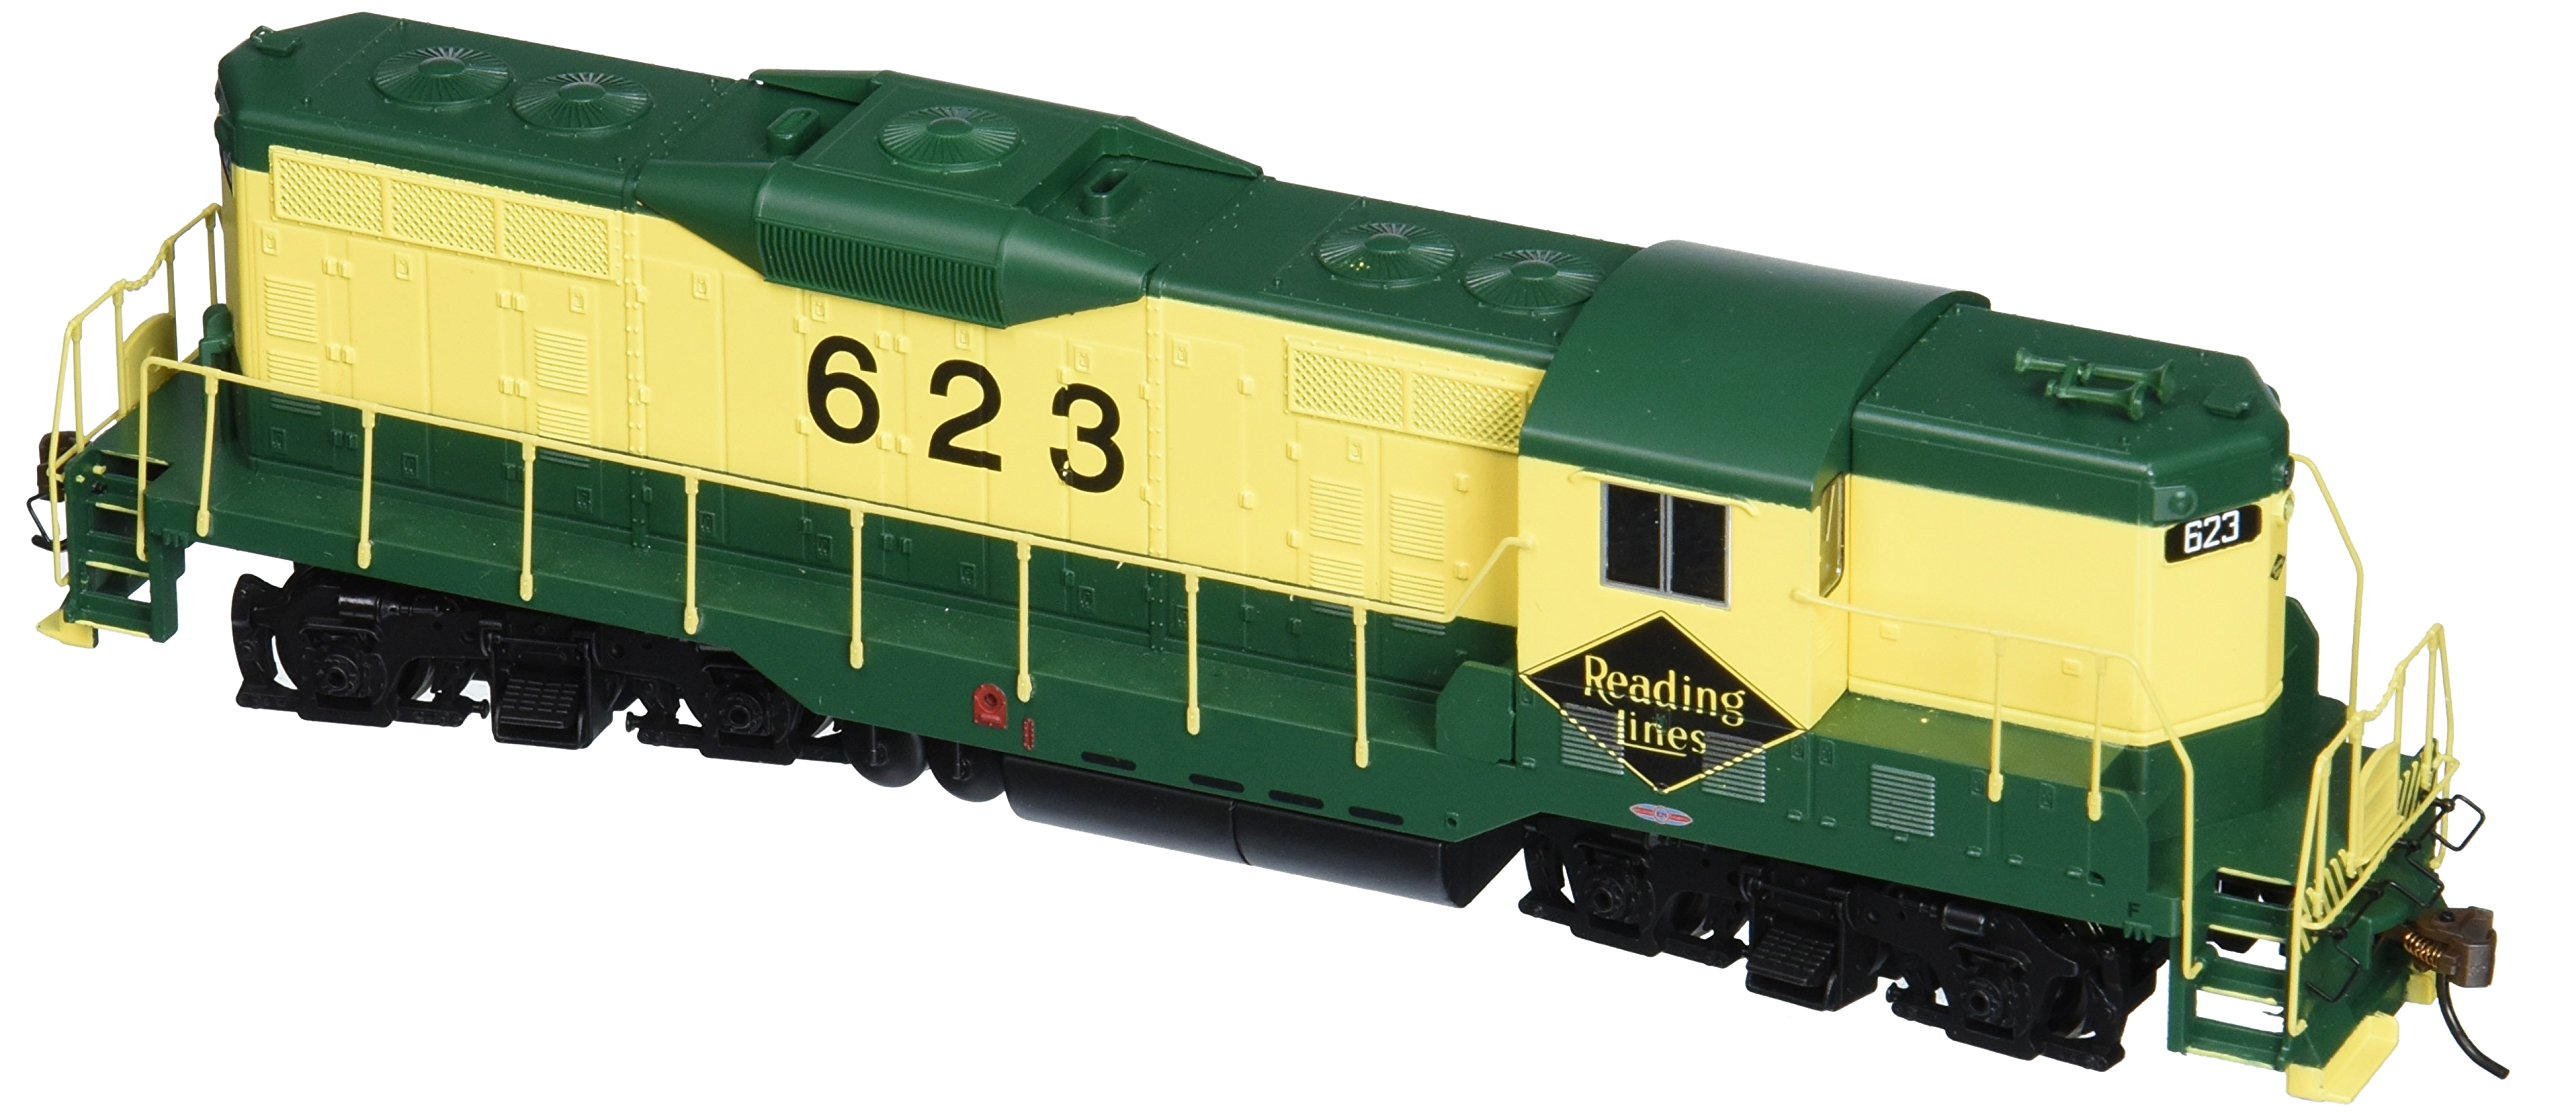 Bachmann Industries EMD GP7 DCC Reading #623 Sound Value Equipped Locomotive (HO Scale)